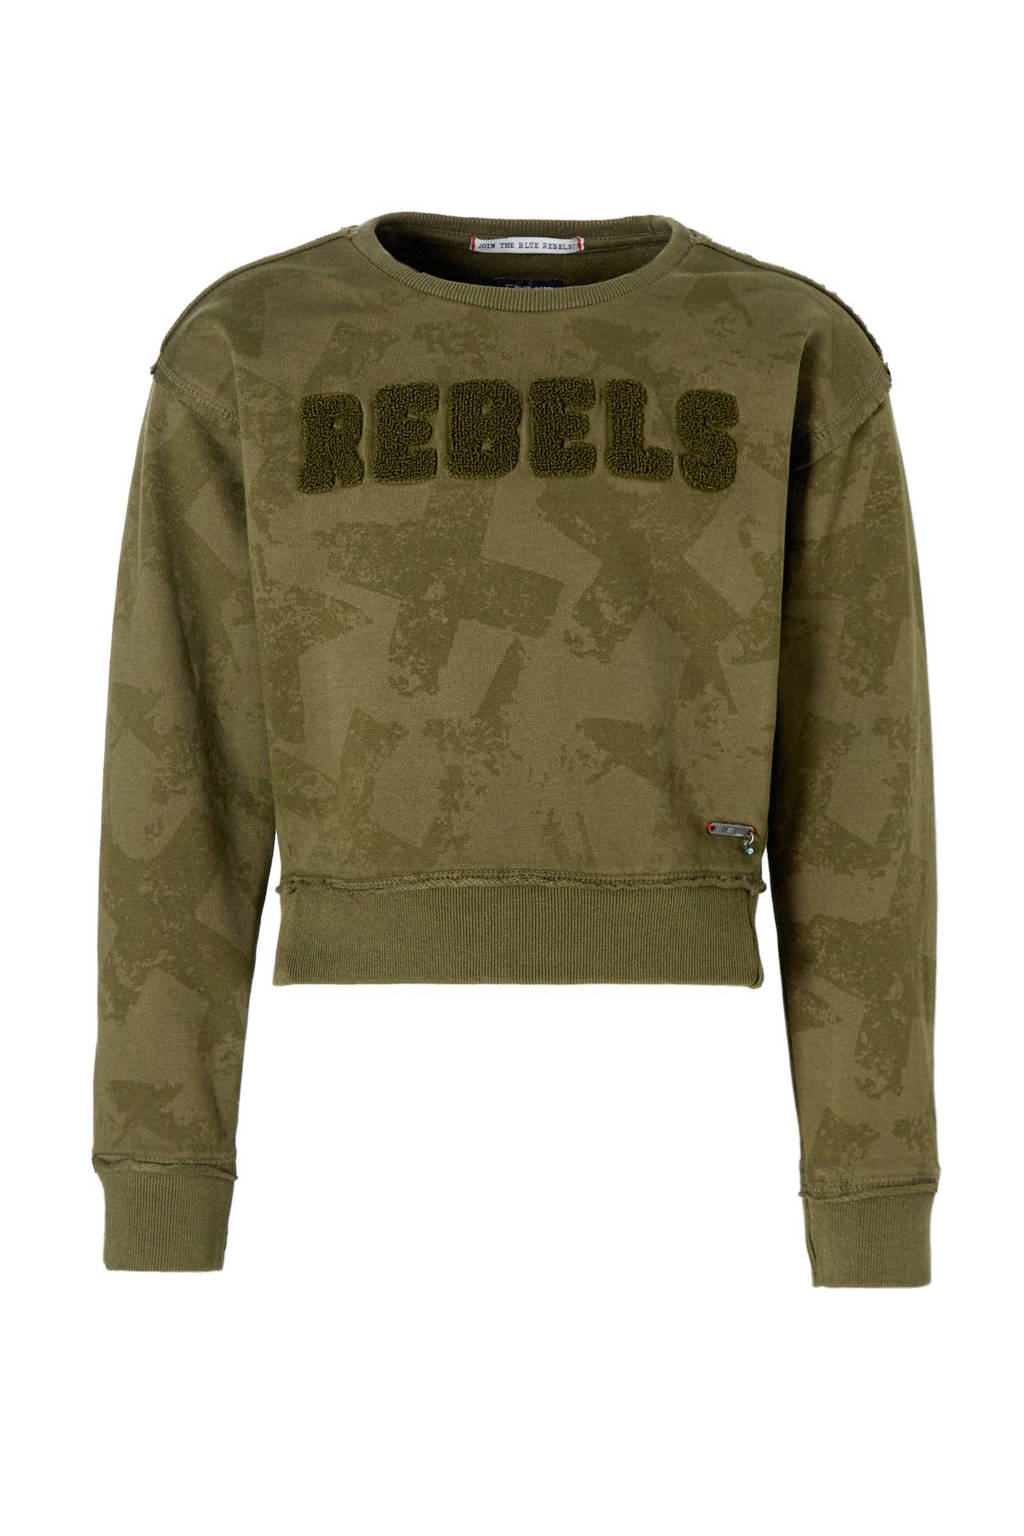 9d337b74b66 Blue Rebel sweater, leger groen